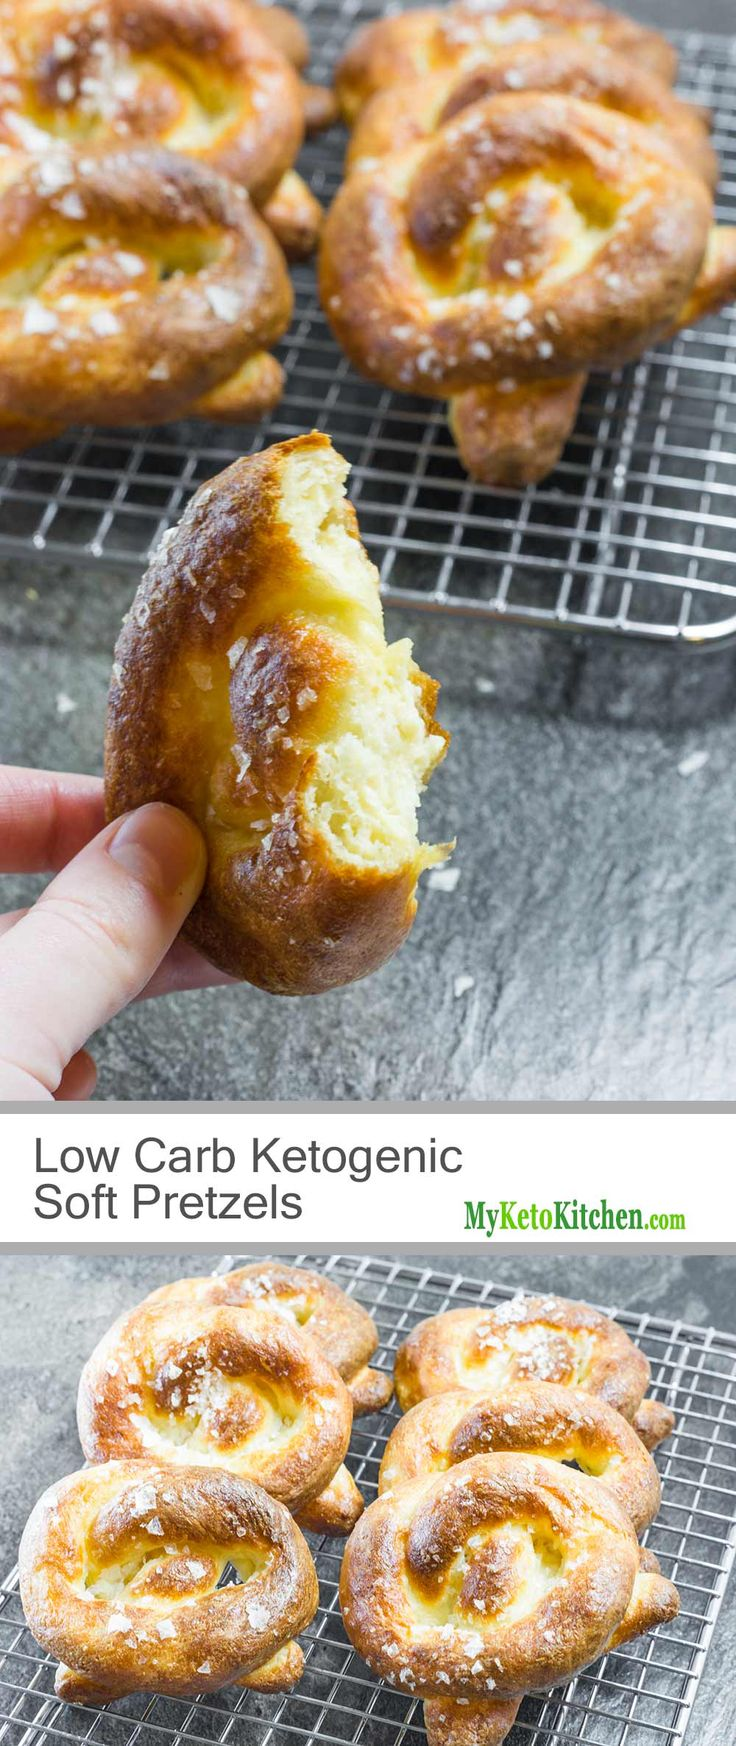 Low Carb Ketogenic Soft Pretzel. I will make this in 2 version Parmesan chesse and other in Cinnamon.